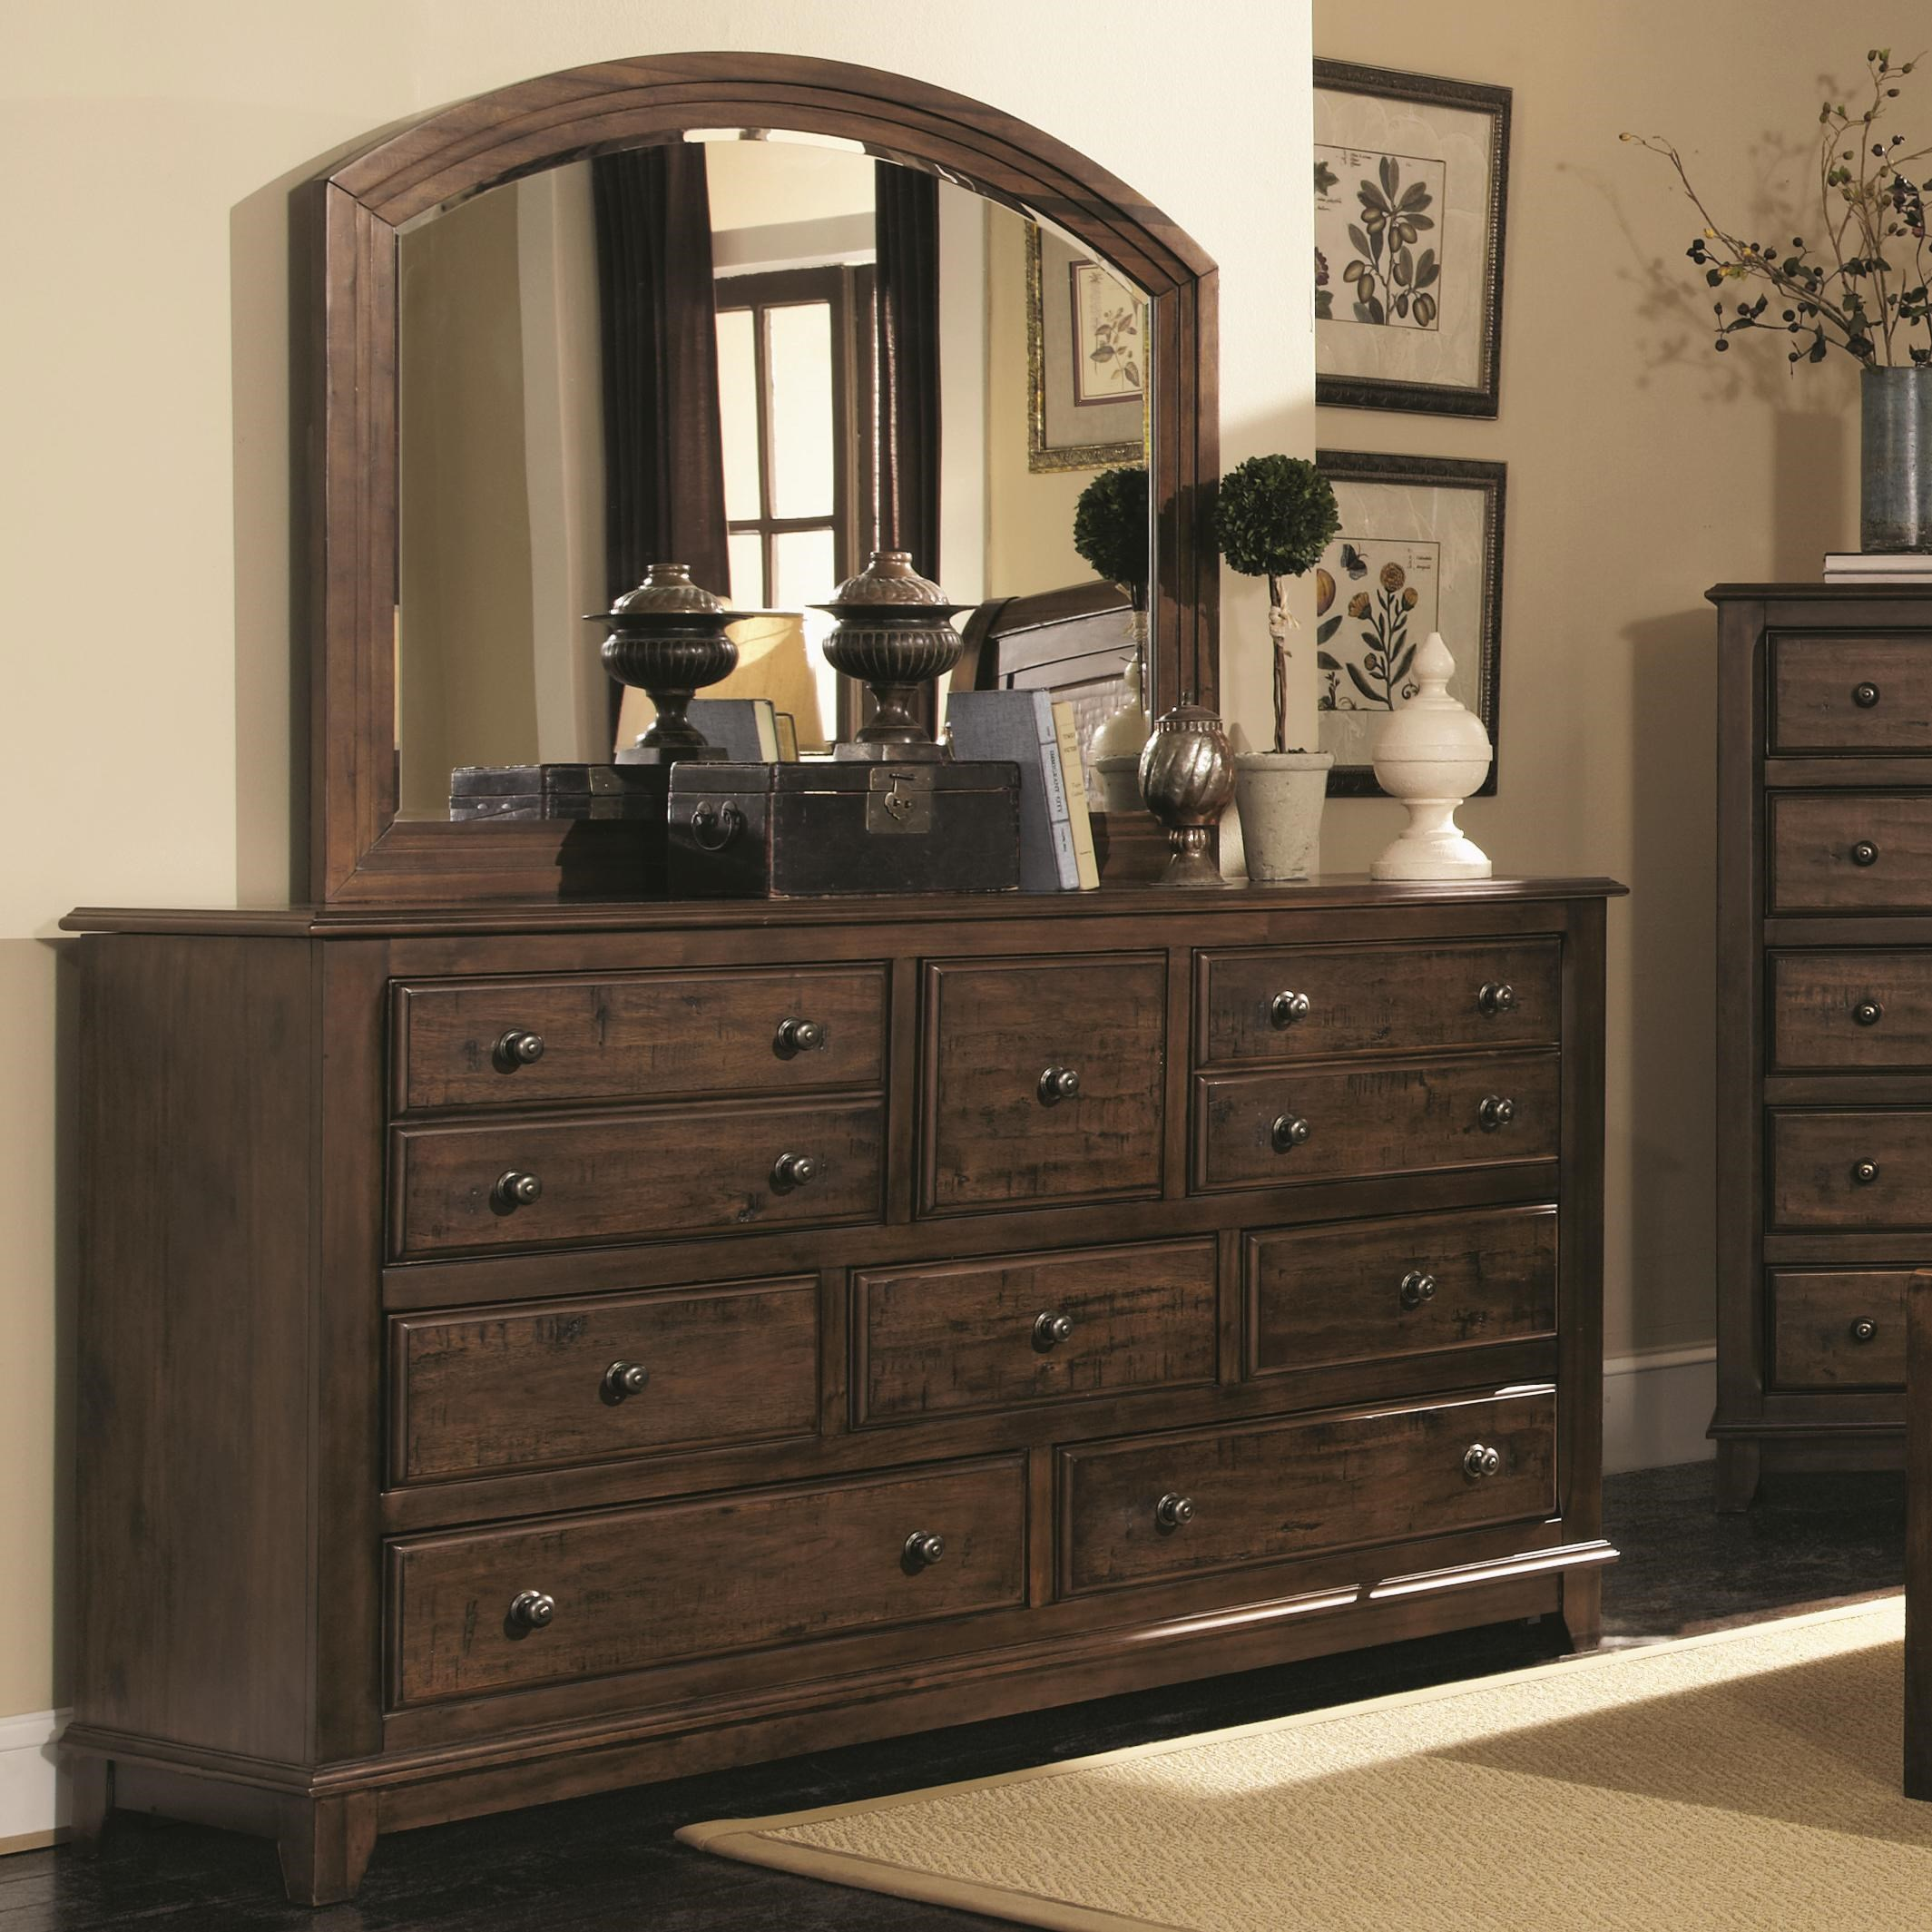 Coaster Laughton 8 Drawer Dresser And Rounded Mirror   Coaster Fine  Furniture